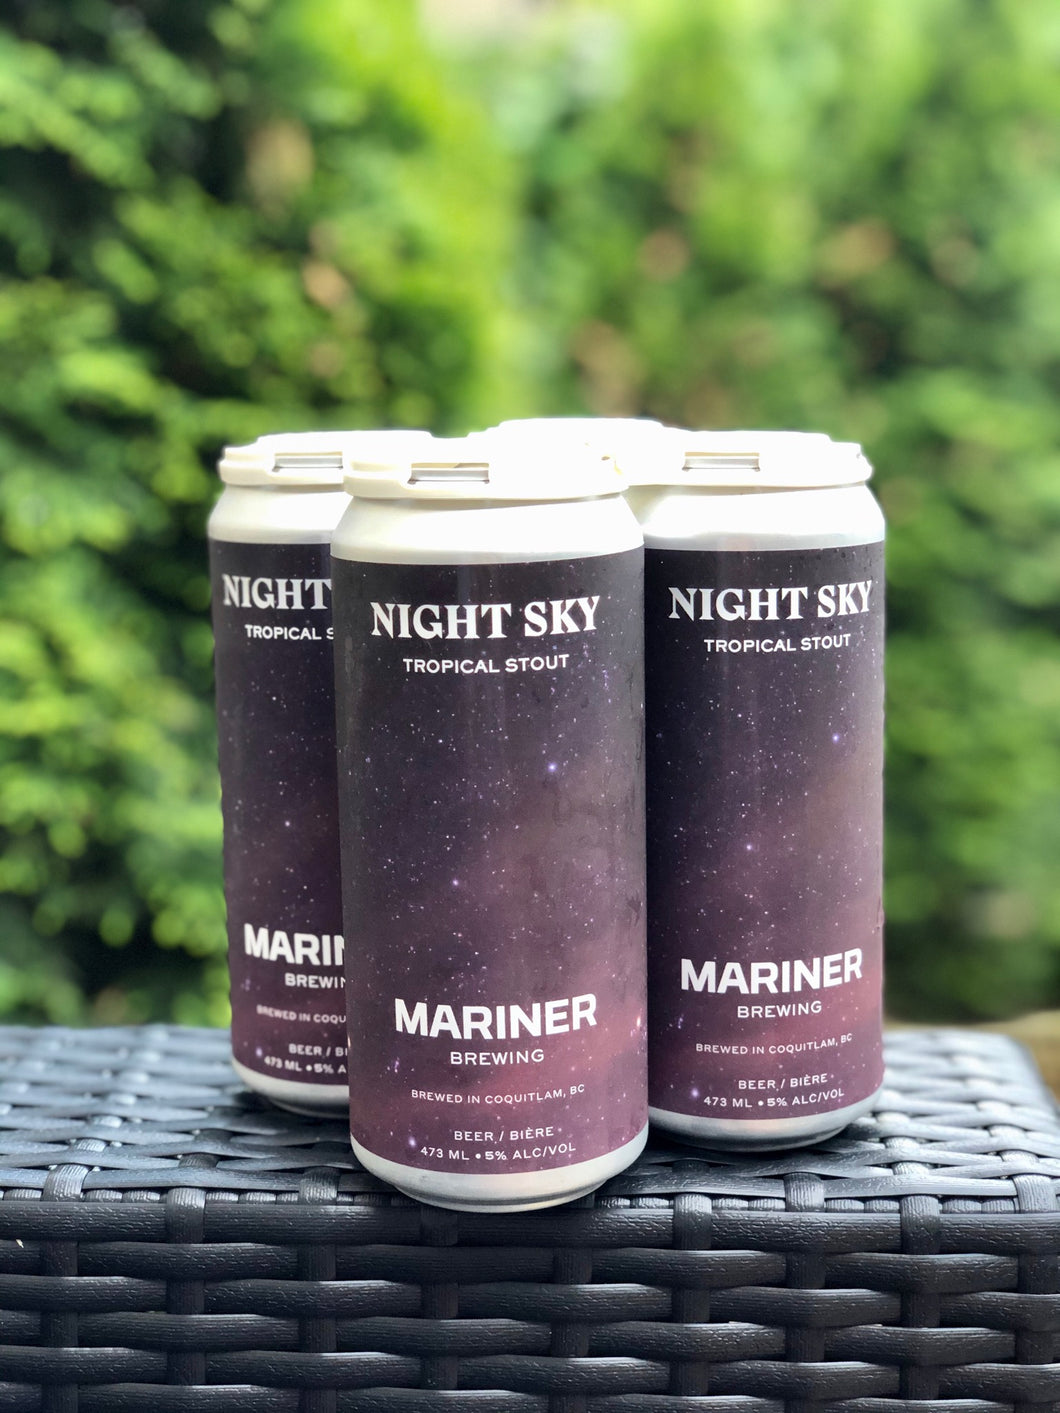 Night Sky Tropical Stout